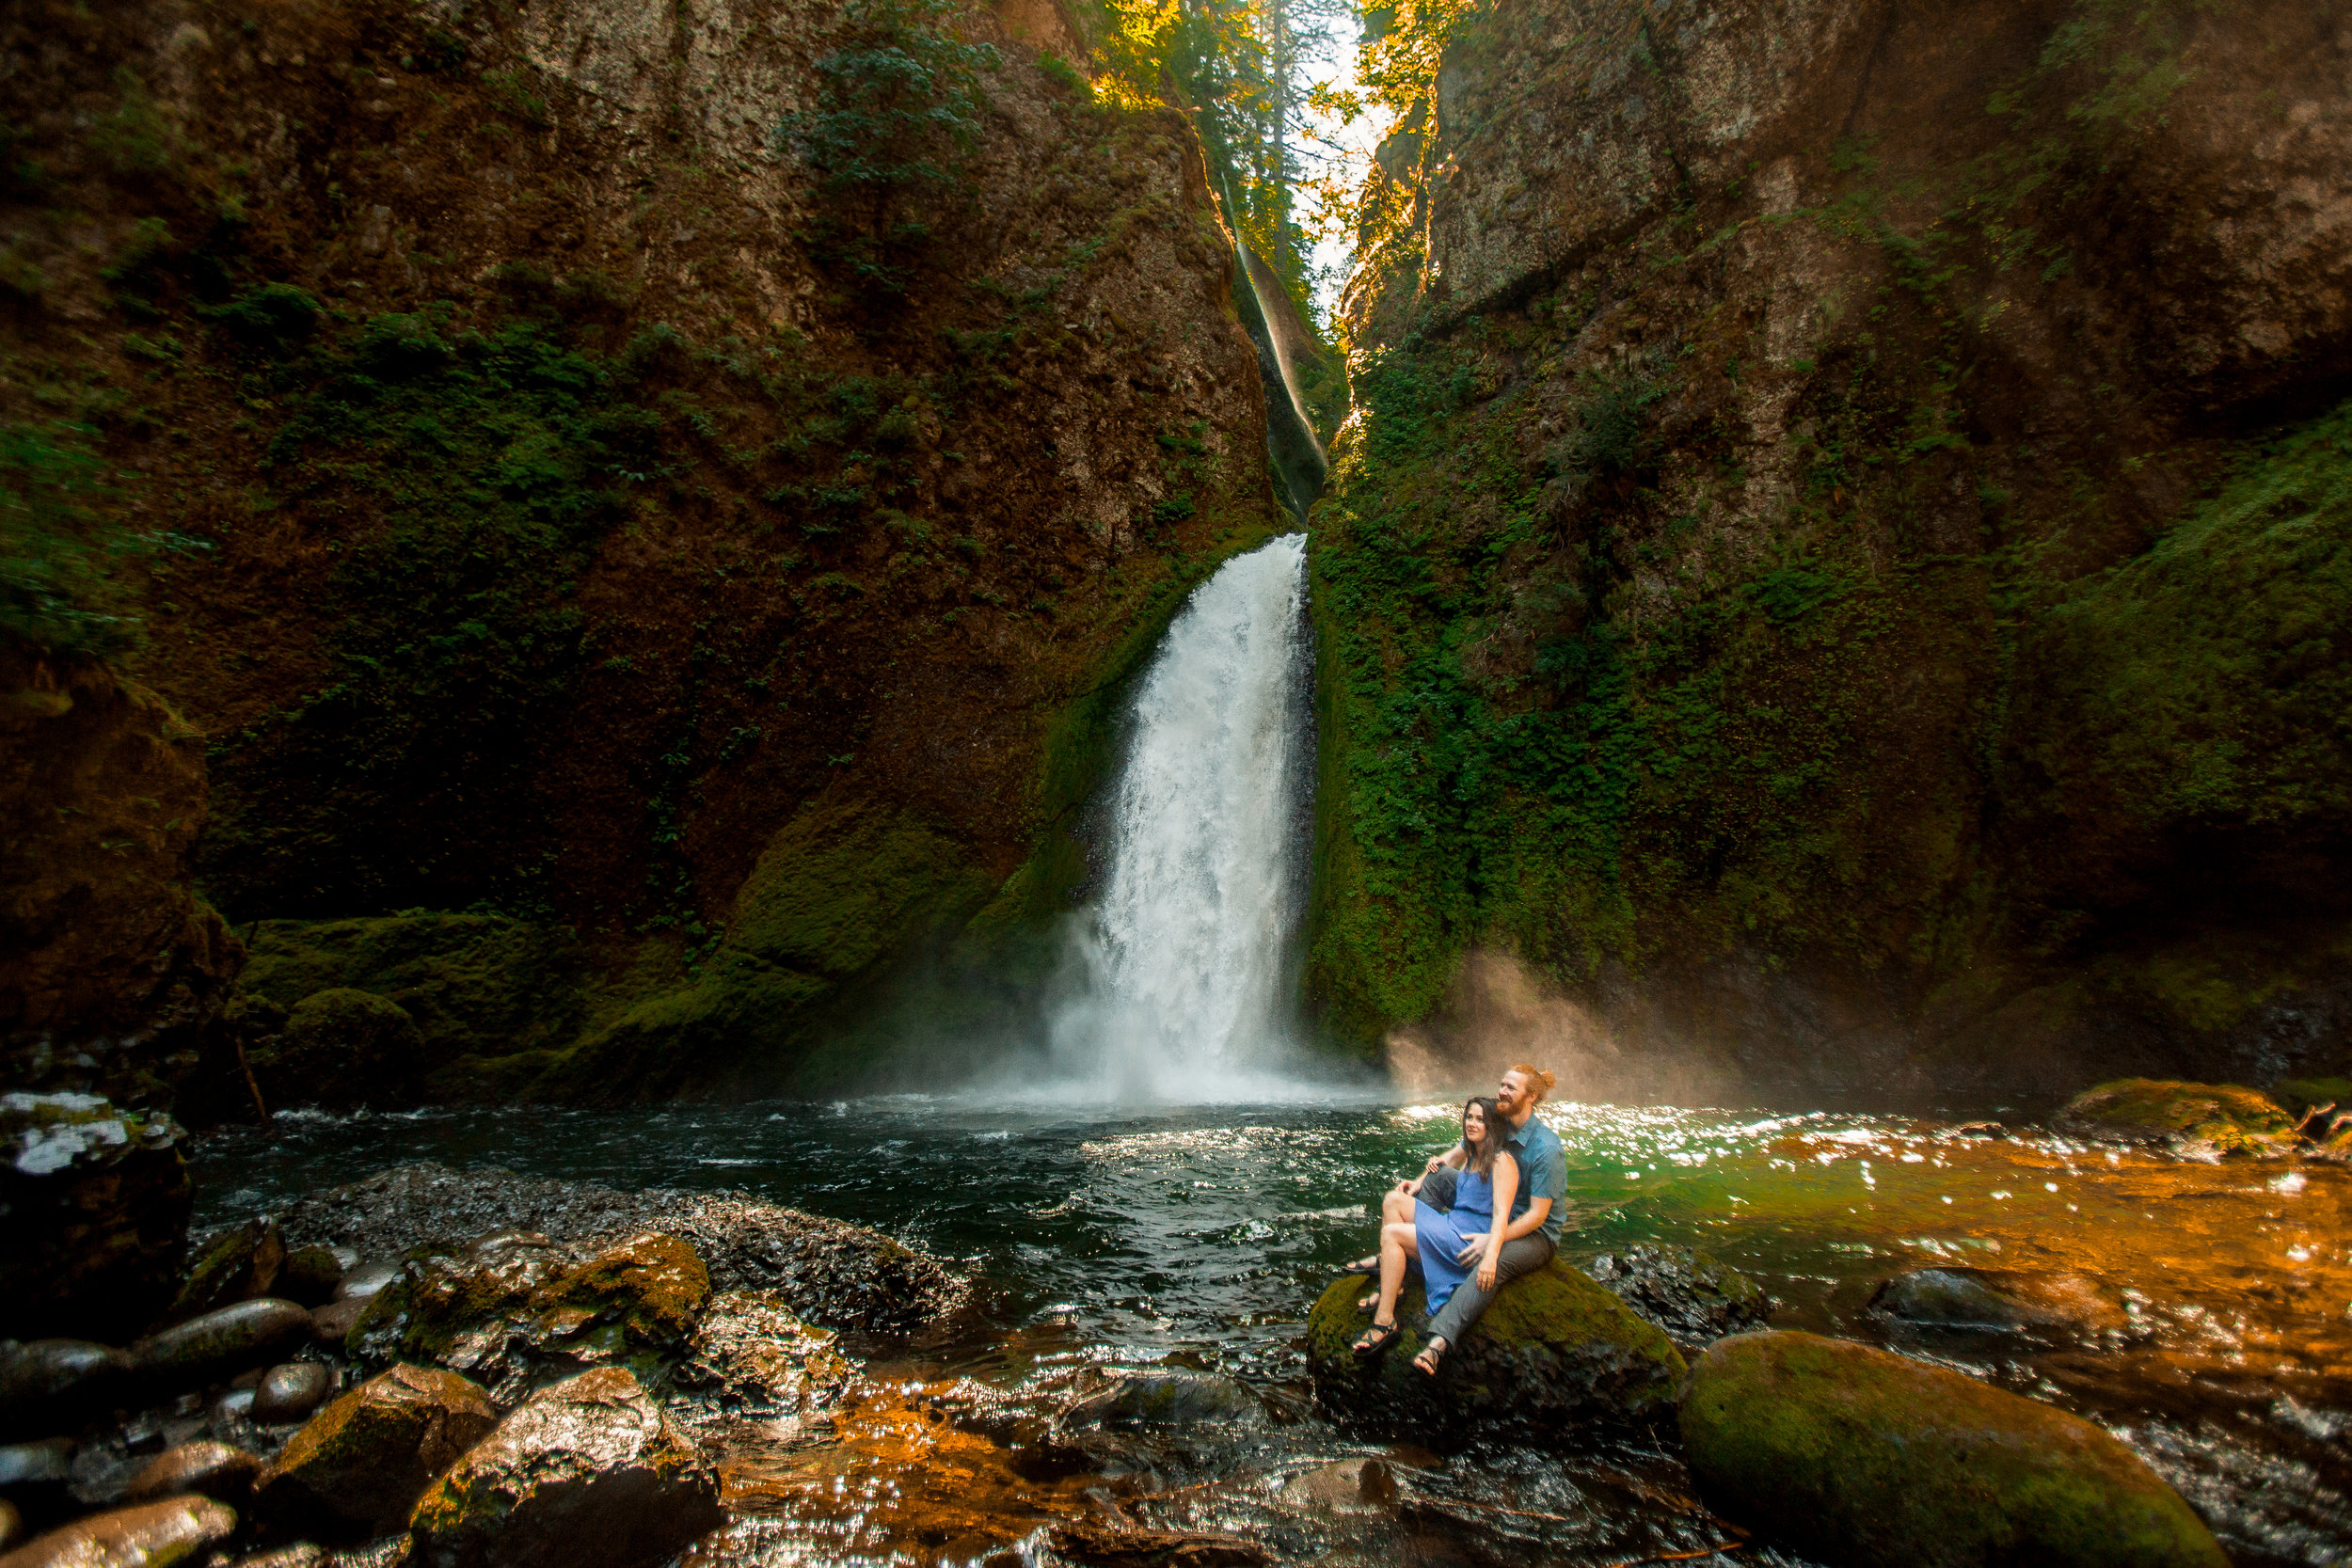 nicole-daacke-photography-wahclella-falls-waterfall-engagement-session-portland-engagement-photographer-columbia-river-gorge-oregon-elopement-photographer-20.jpg